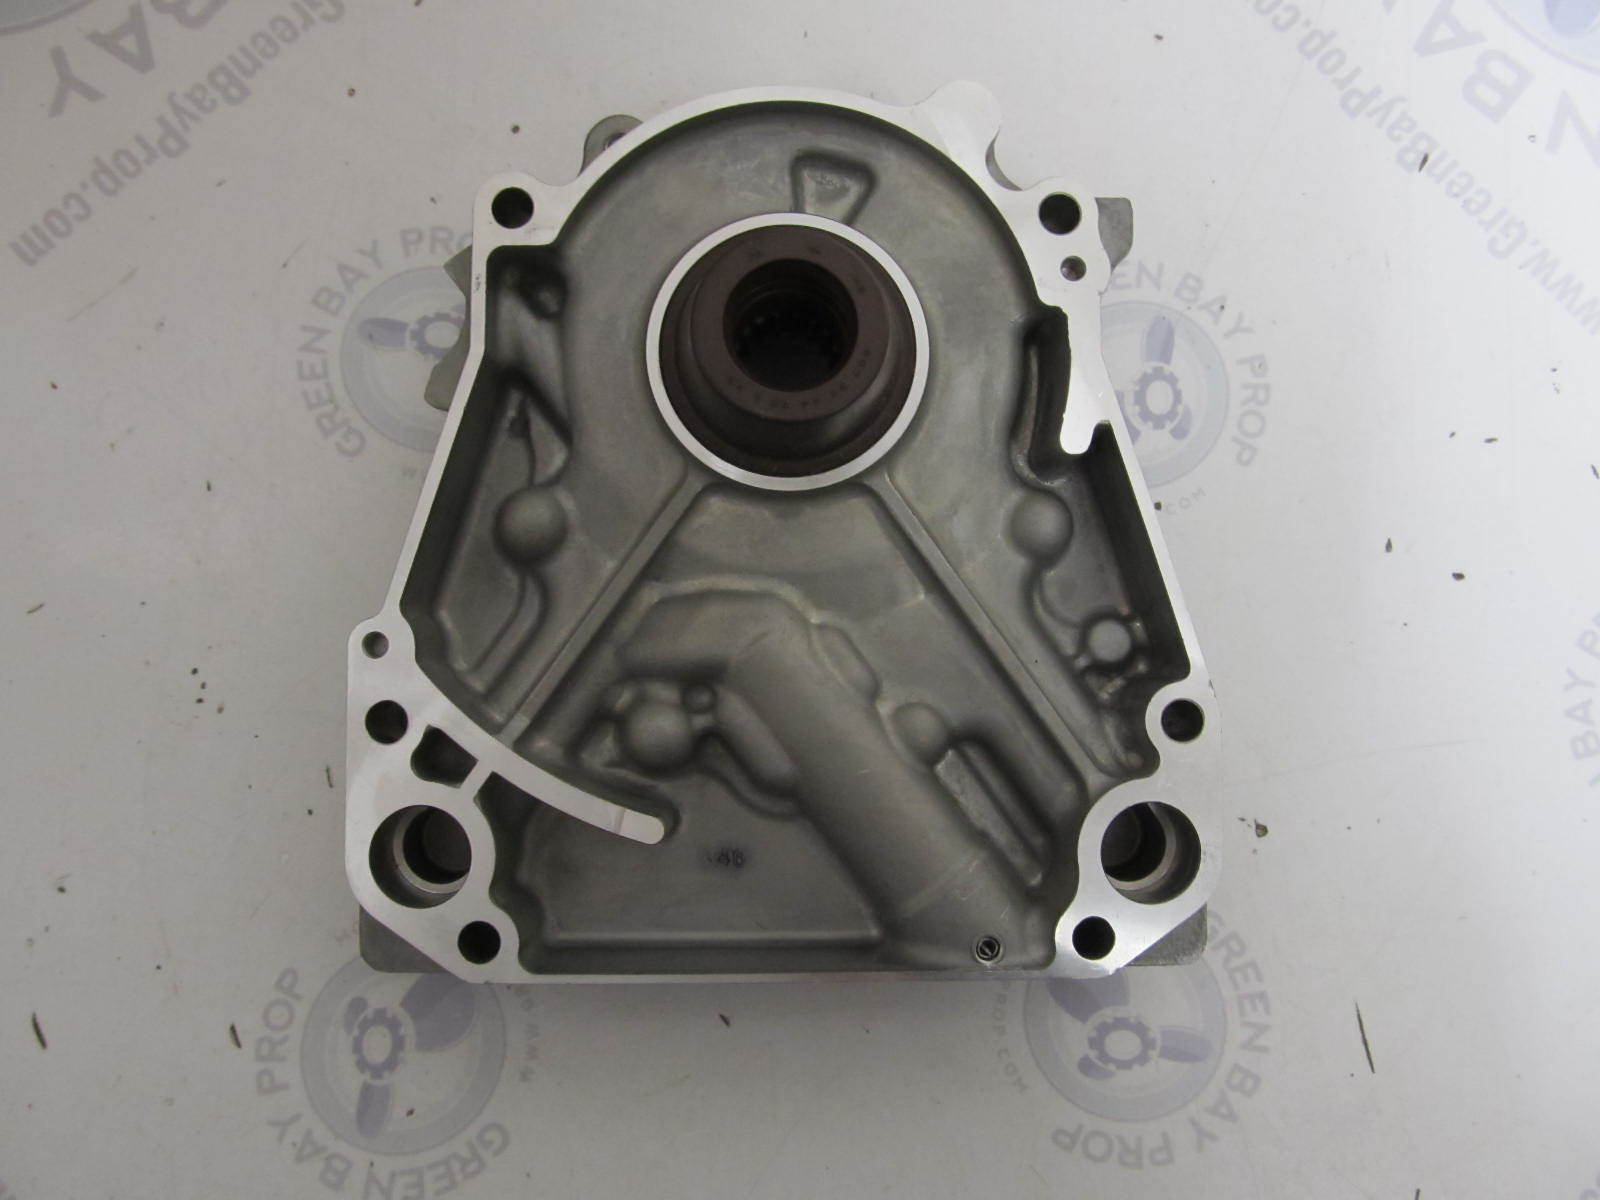 858579T3 Fits Mercury Mariner 75-115 Hp 4 Stroke EFI Outboard Oil Pump